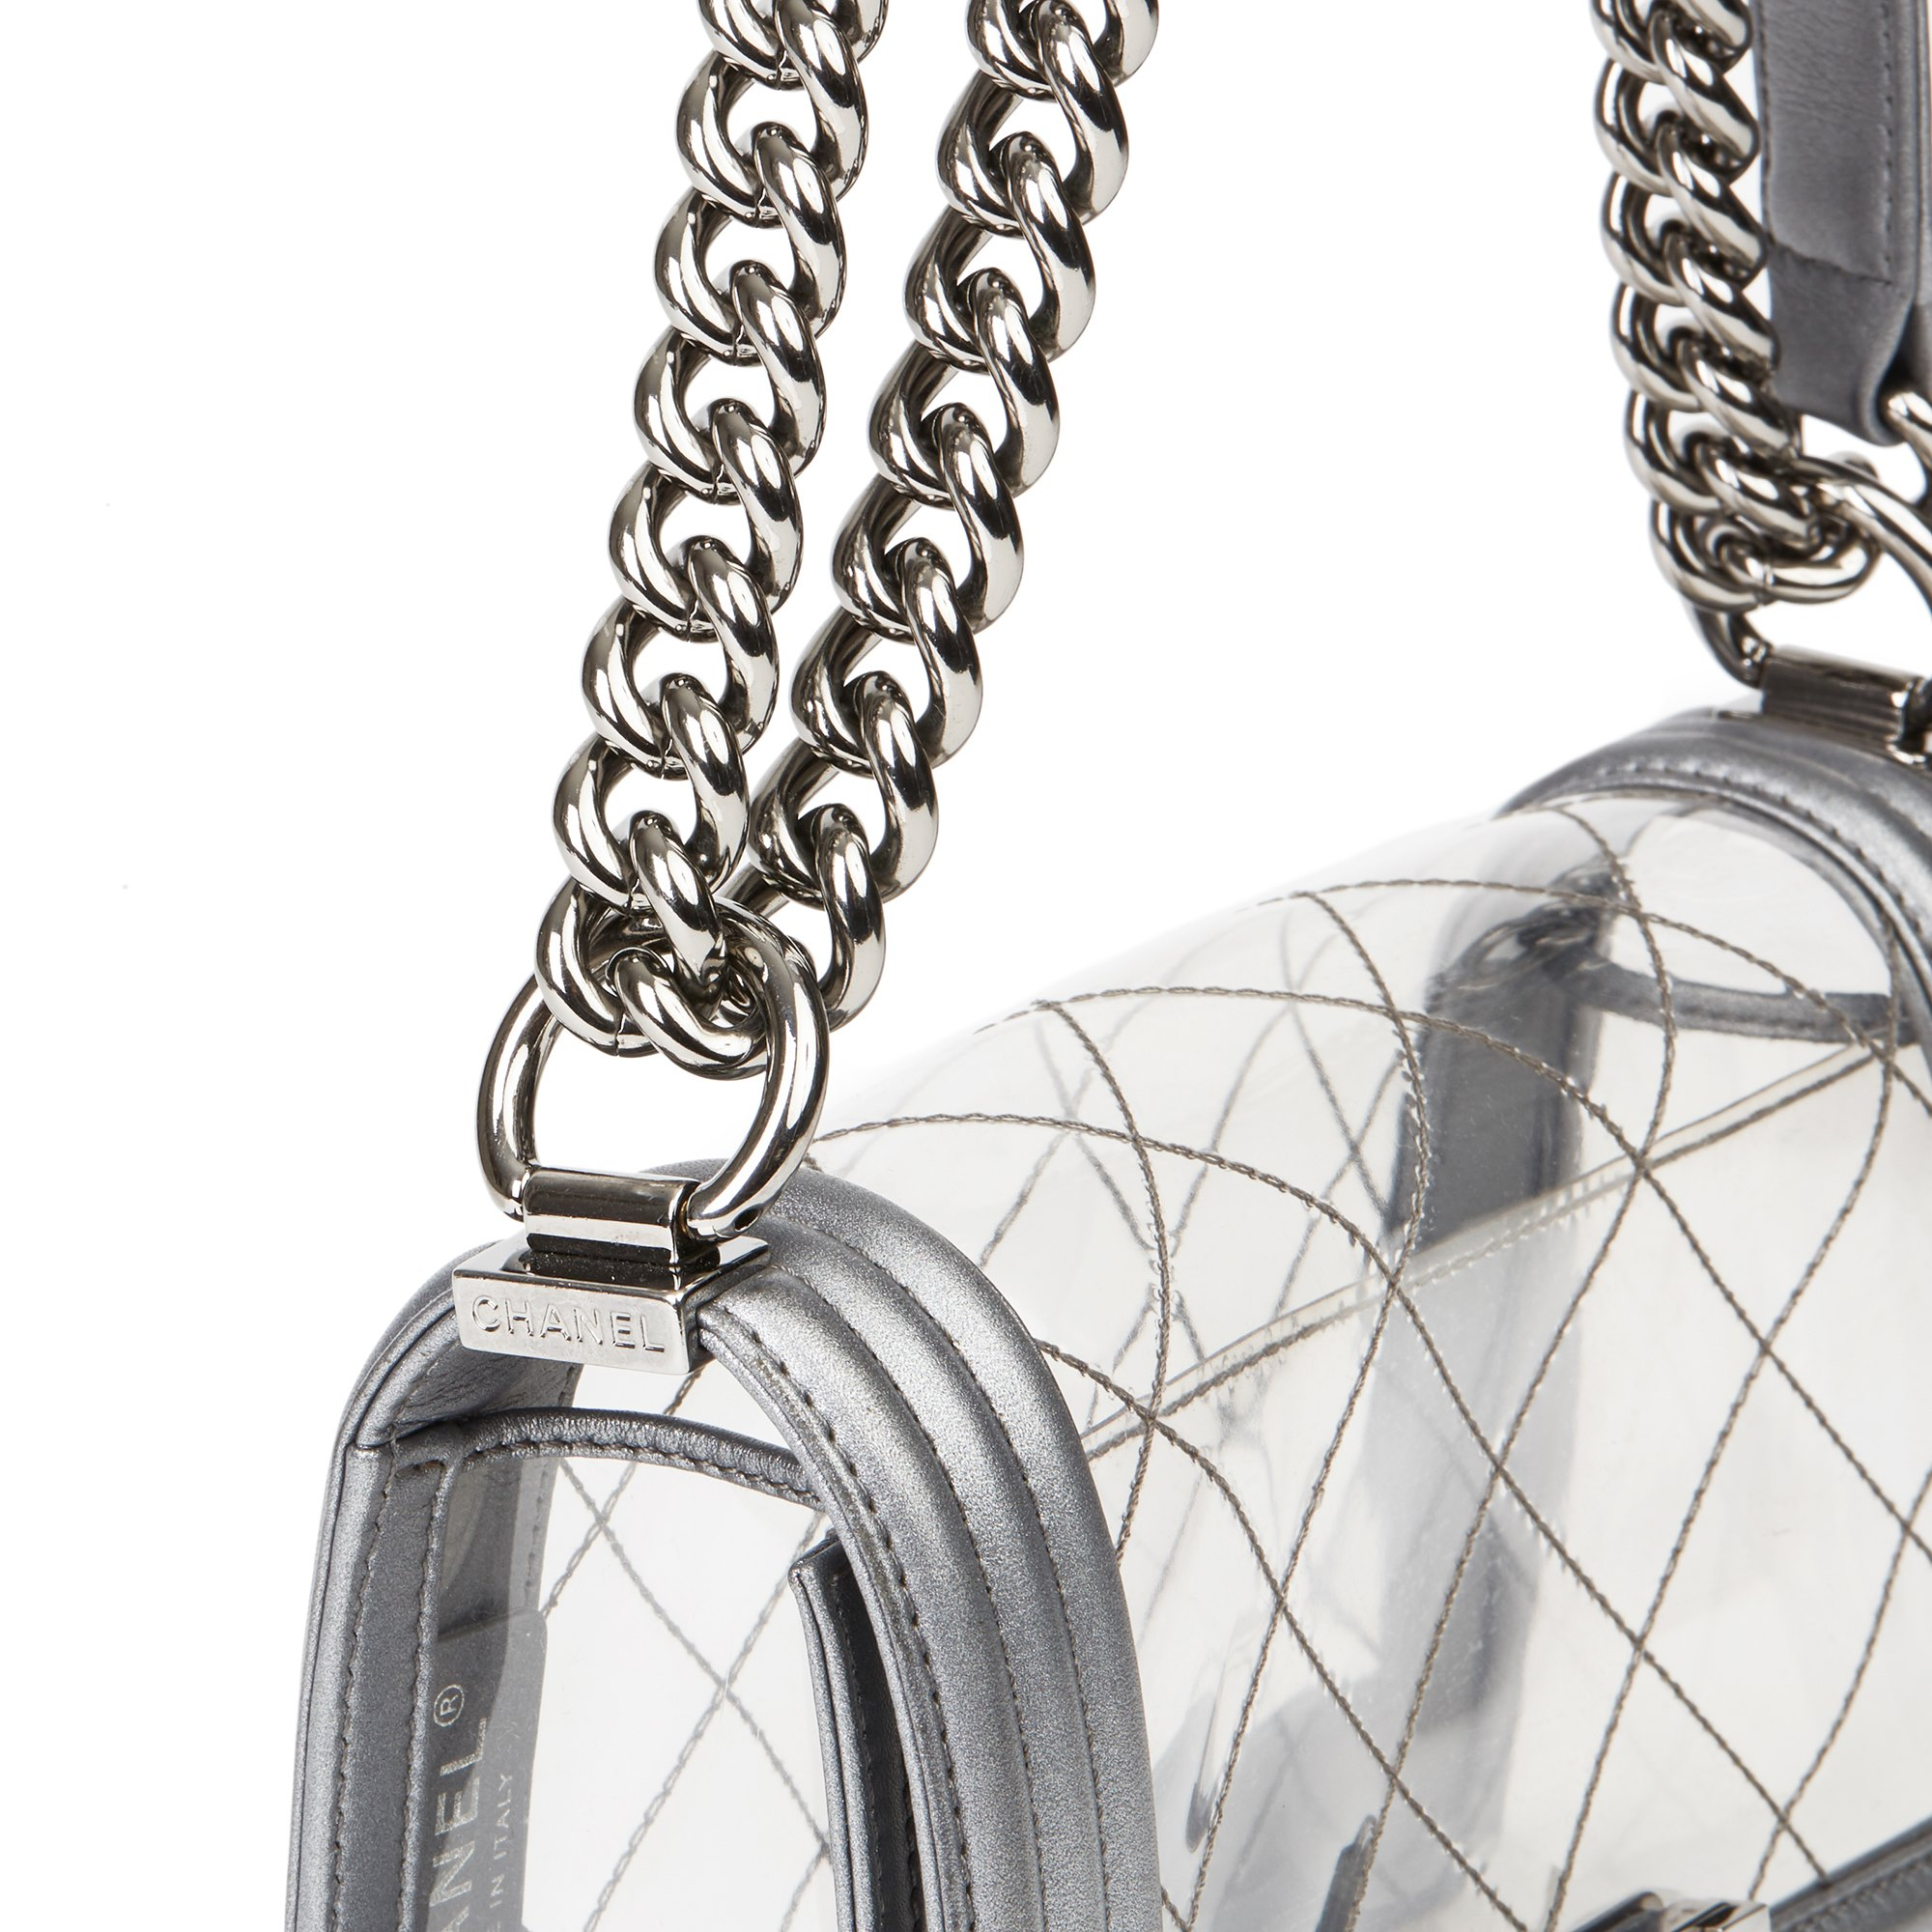 Chanel Silver Metallic Calfskin Leather & Transparent PVC Naked Small Le Boy